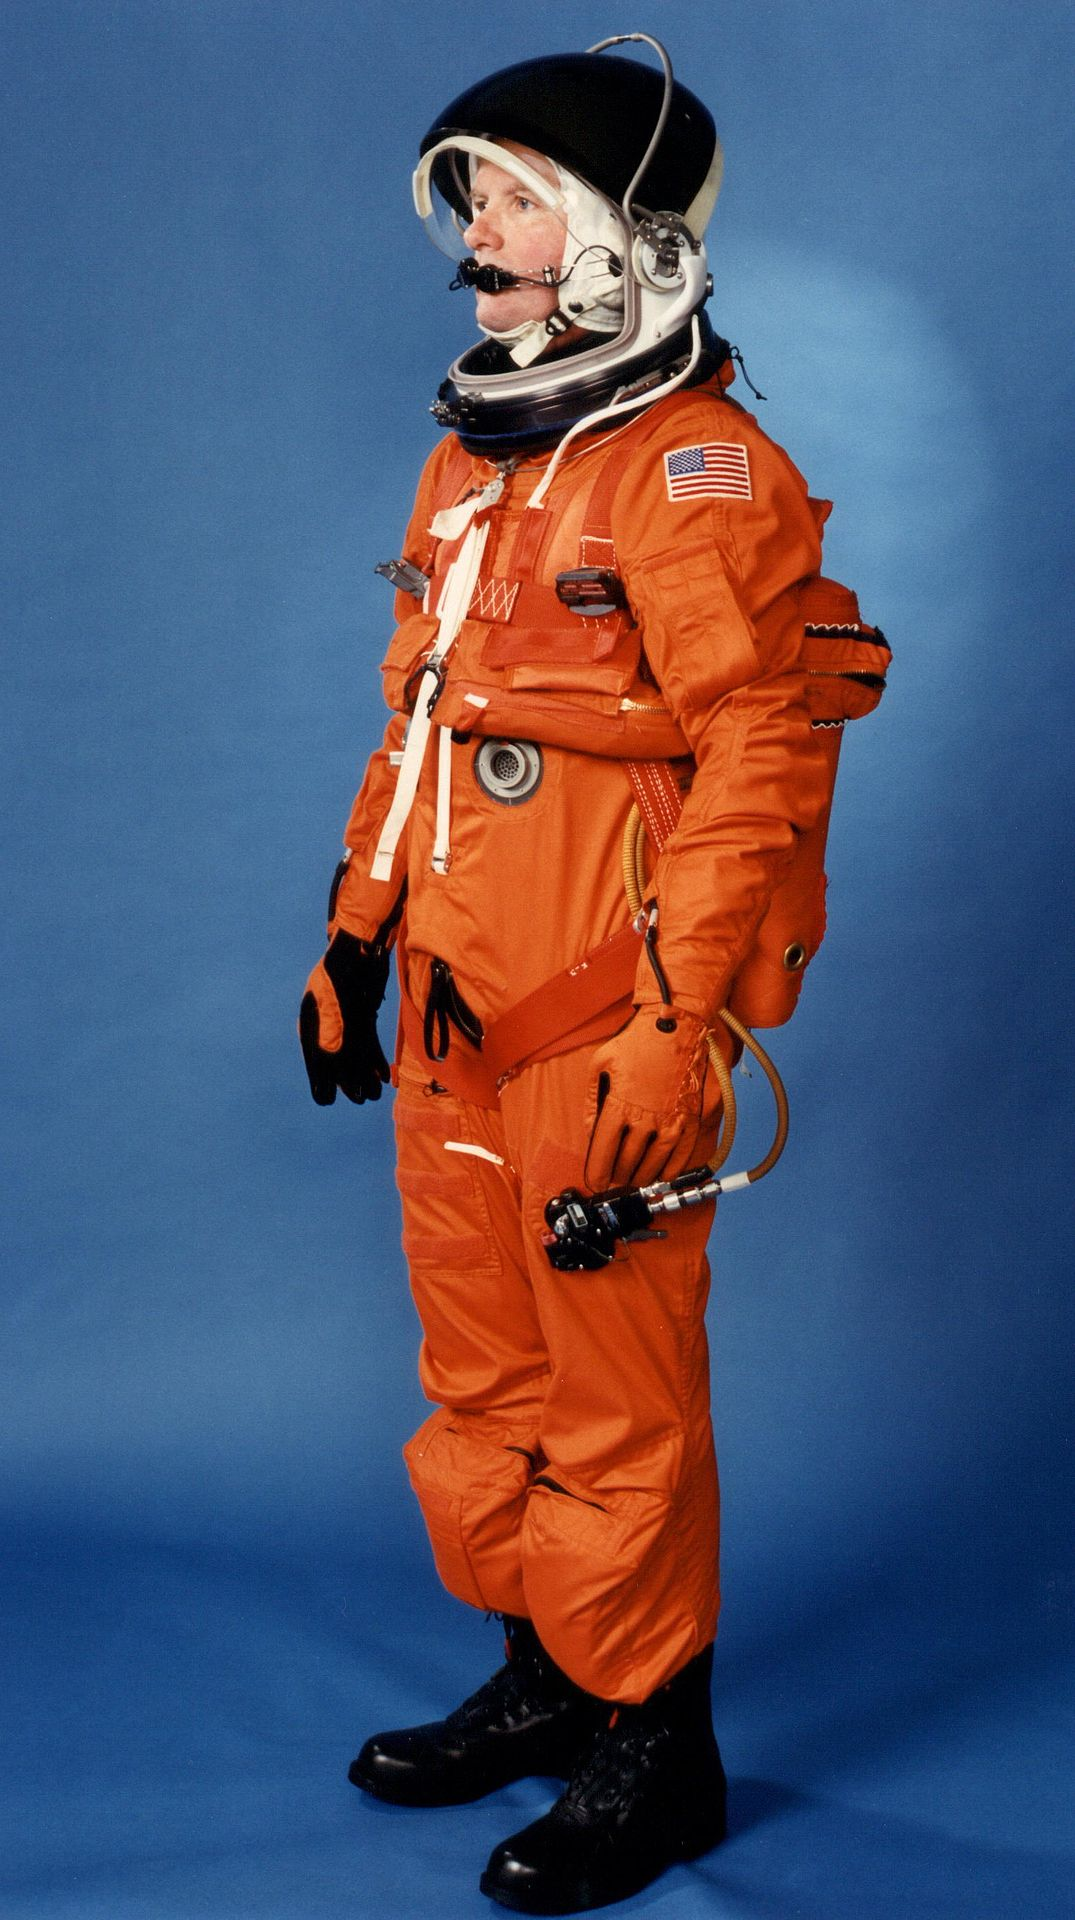 Pin by Michal Kalina on Space Space suit, Astronaut